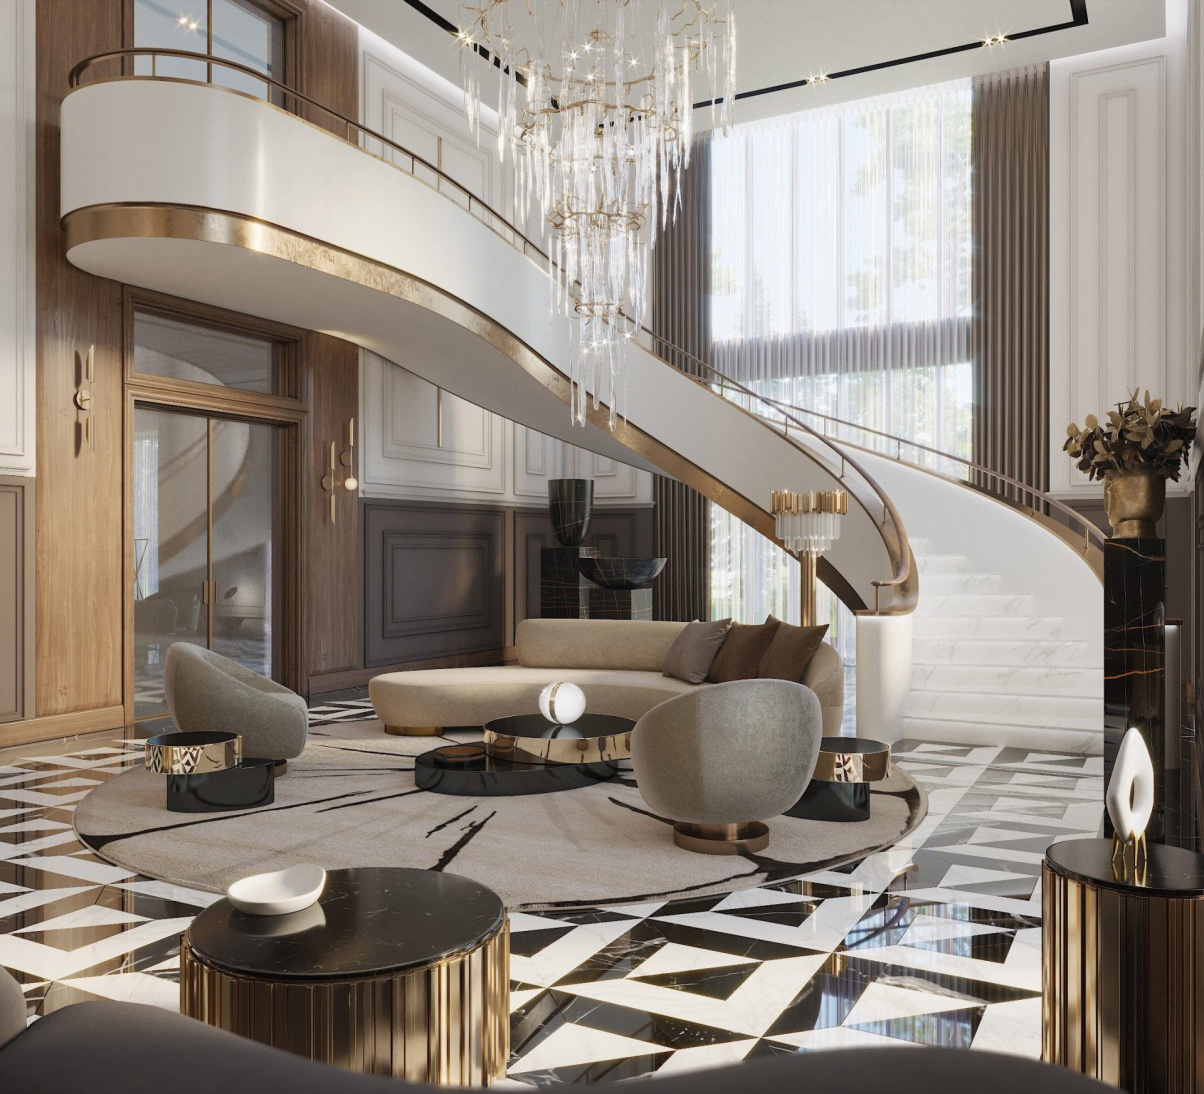 Check Out This Jaw Dropping All-Neutral Residential Project By City Architecture & Design! city architecture Check Out This Jaw Dropping All-Neutral Residential Project By City Architecture & Design! 5 7